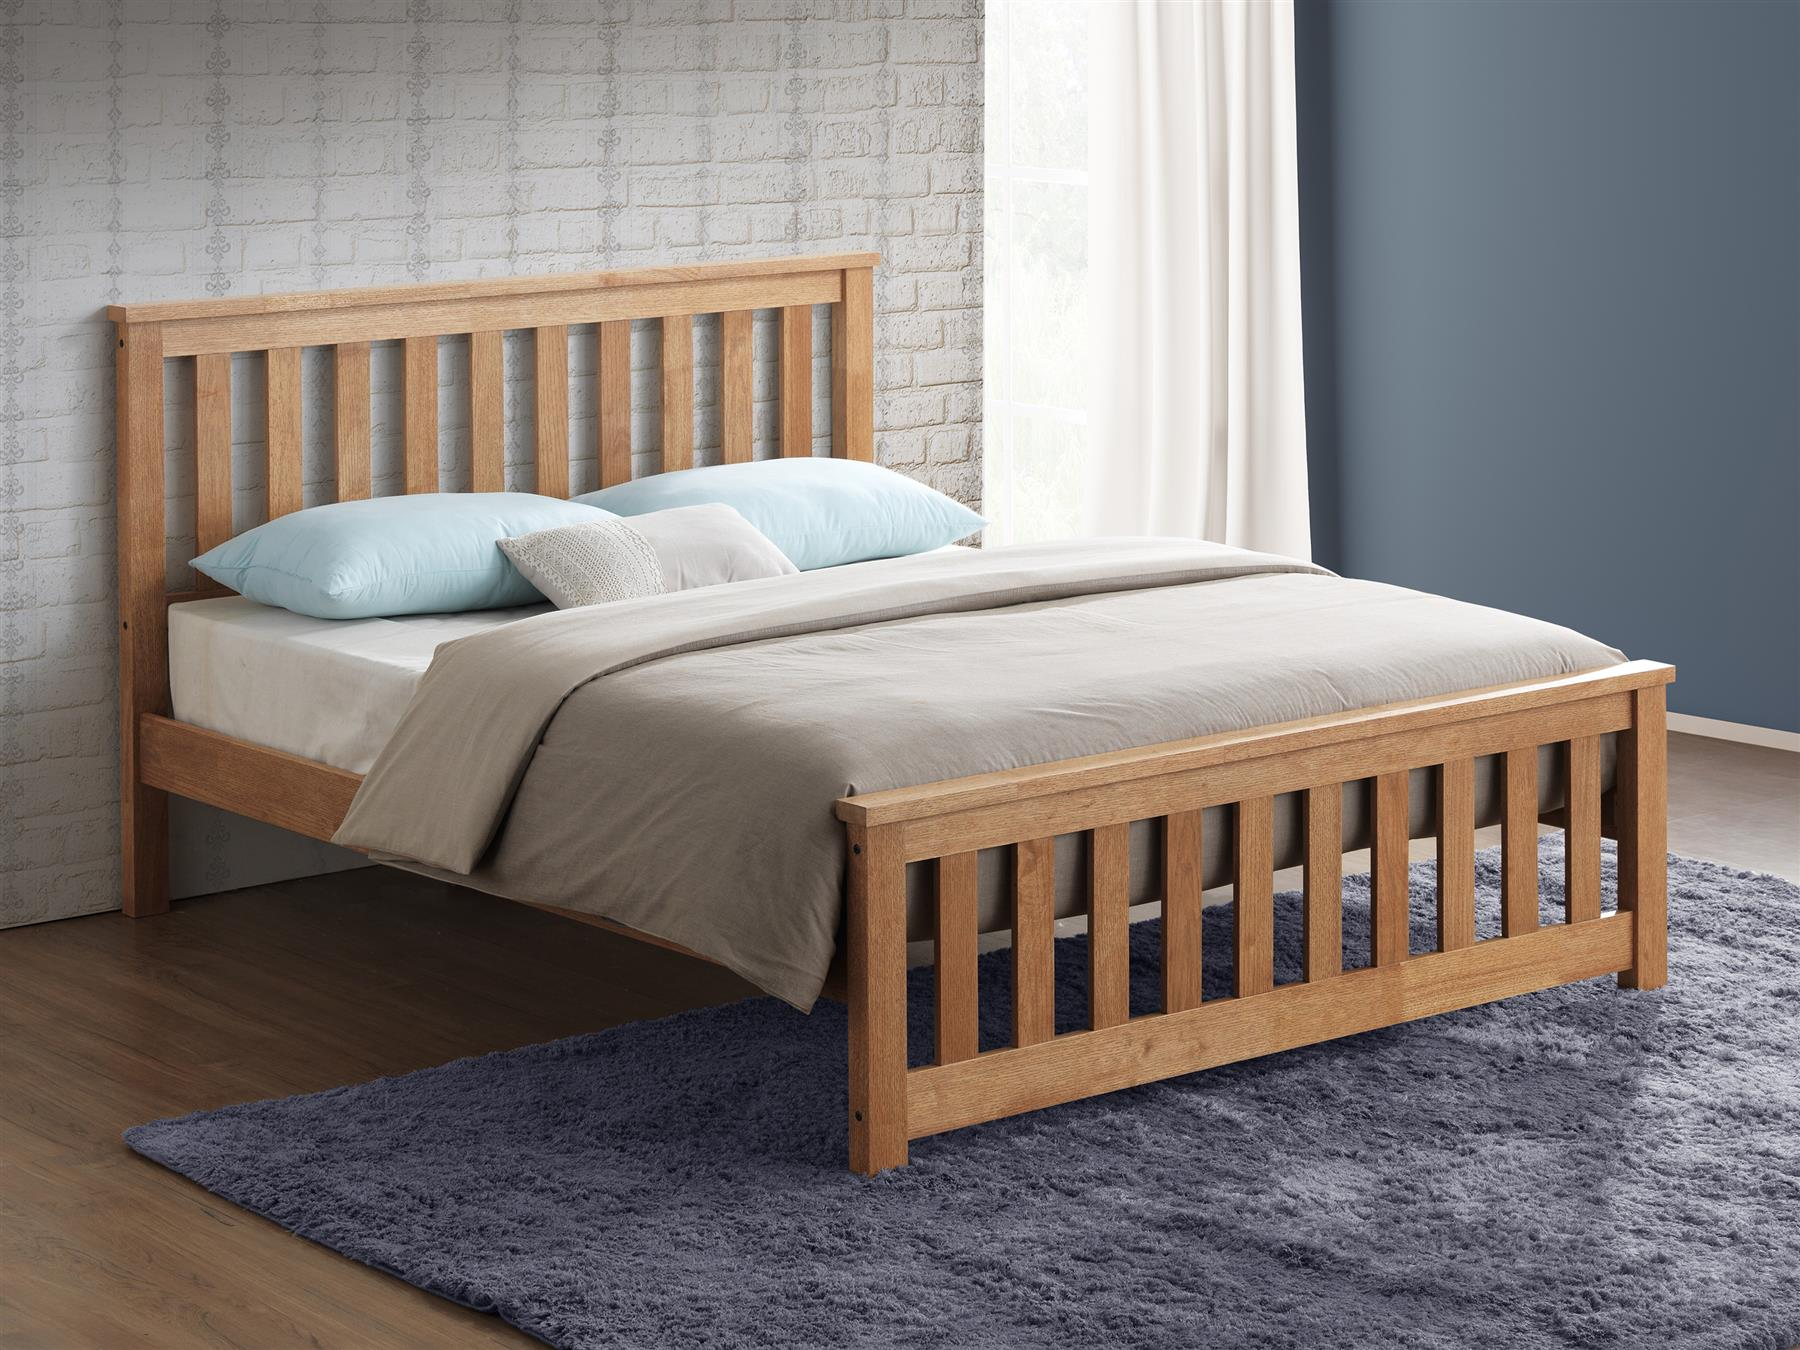 Sweet Dreams Conrad Solid Hevea Wood Oak Finish King Size Bed Frame 5FT 150cm